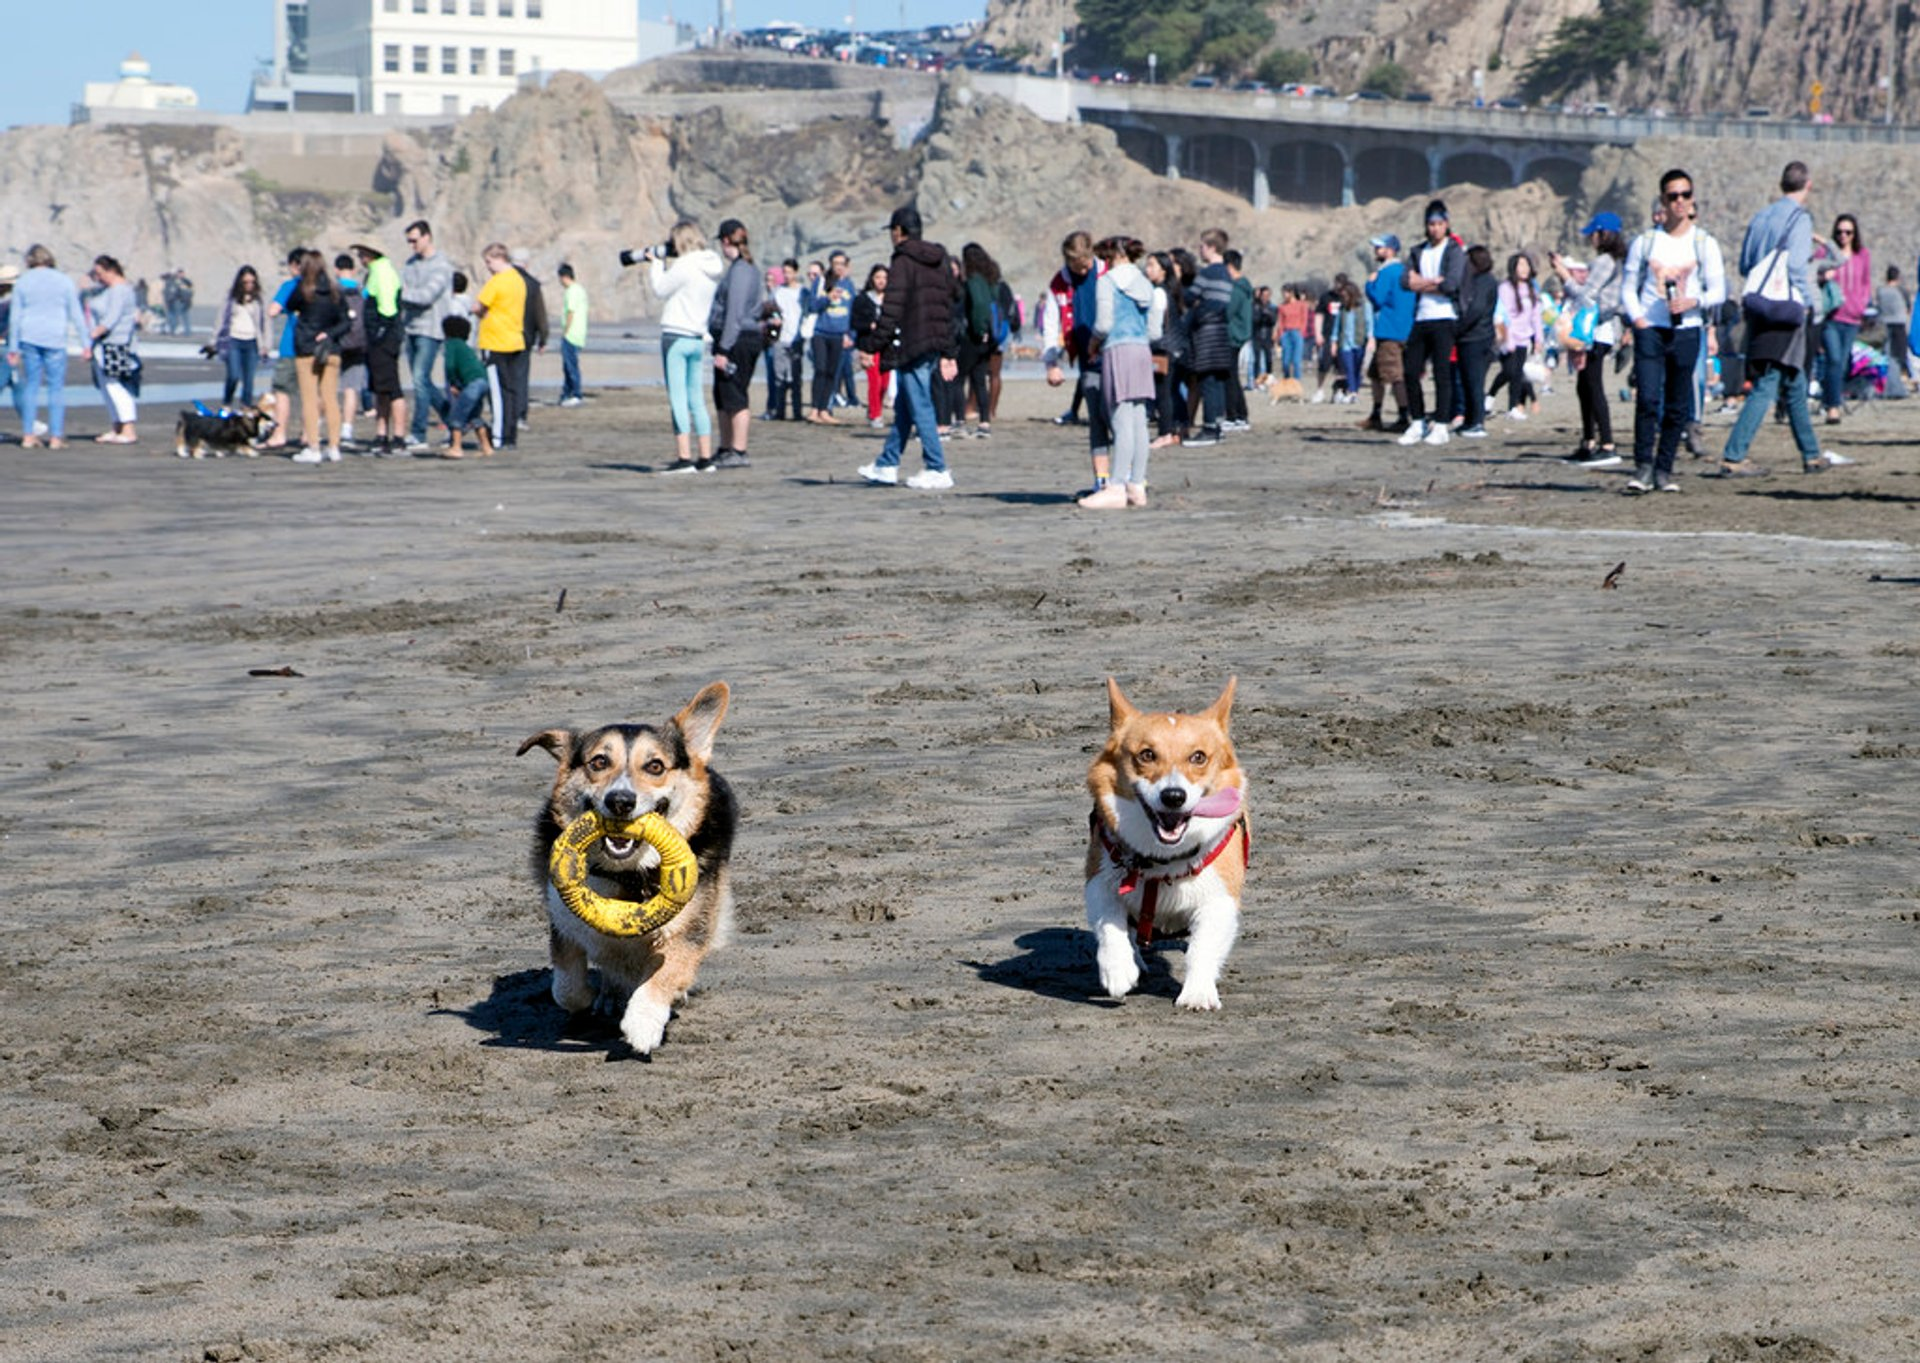 Corgi Con SF in San Francisco - Best Season 2020